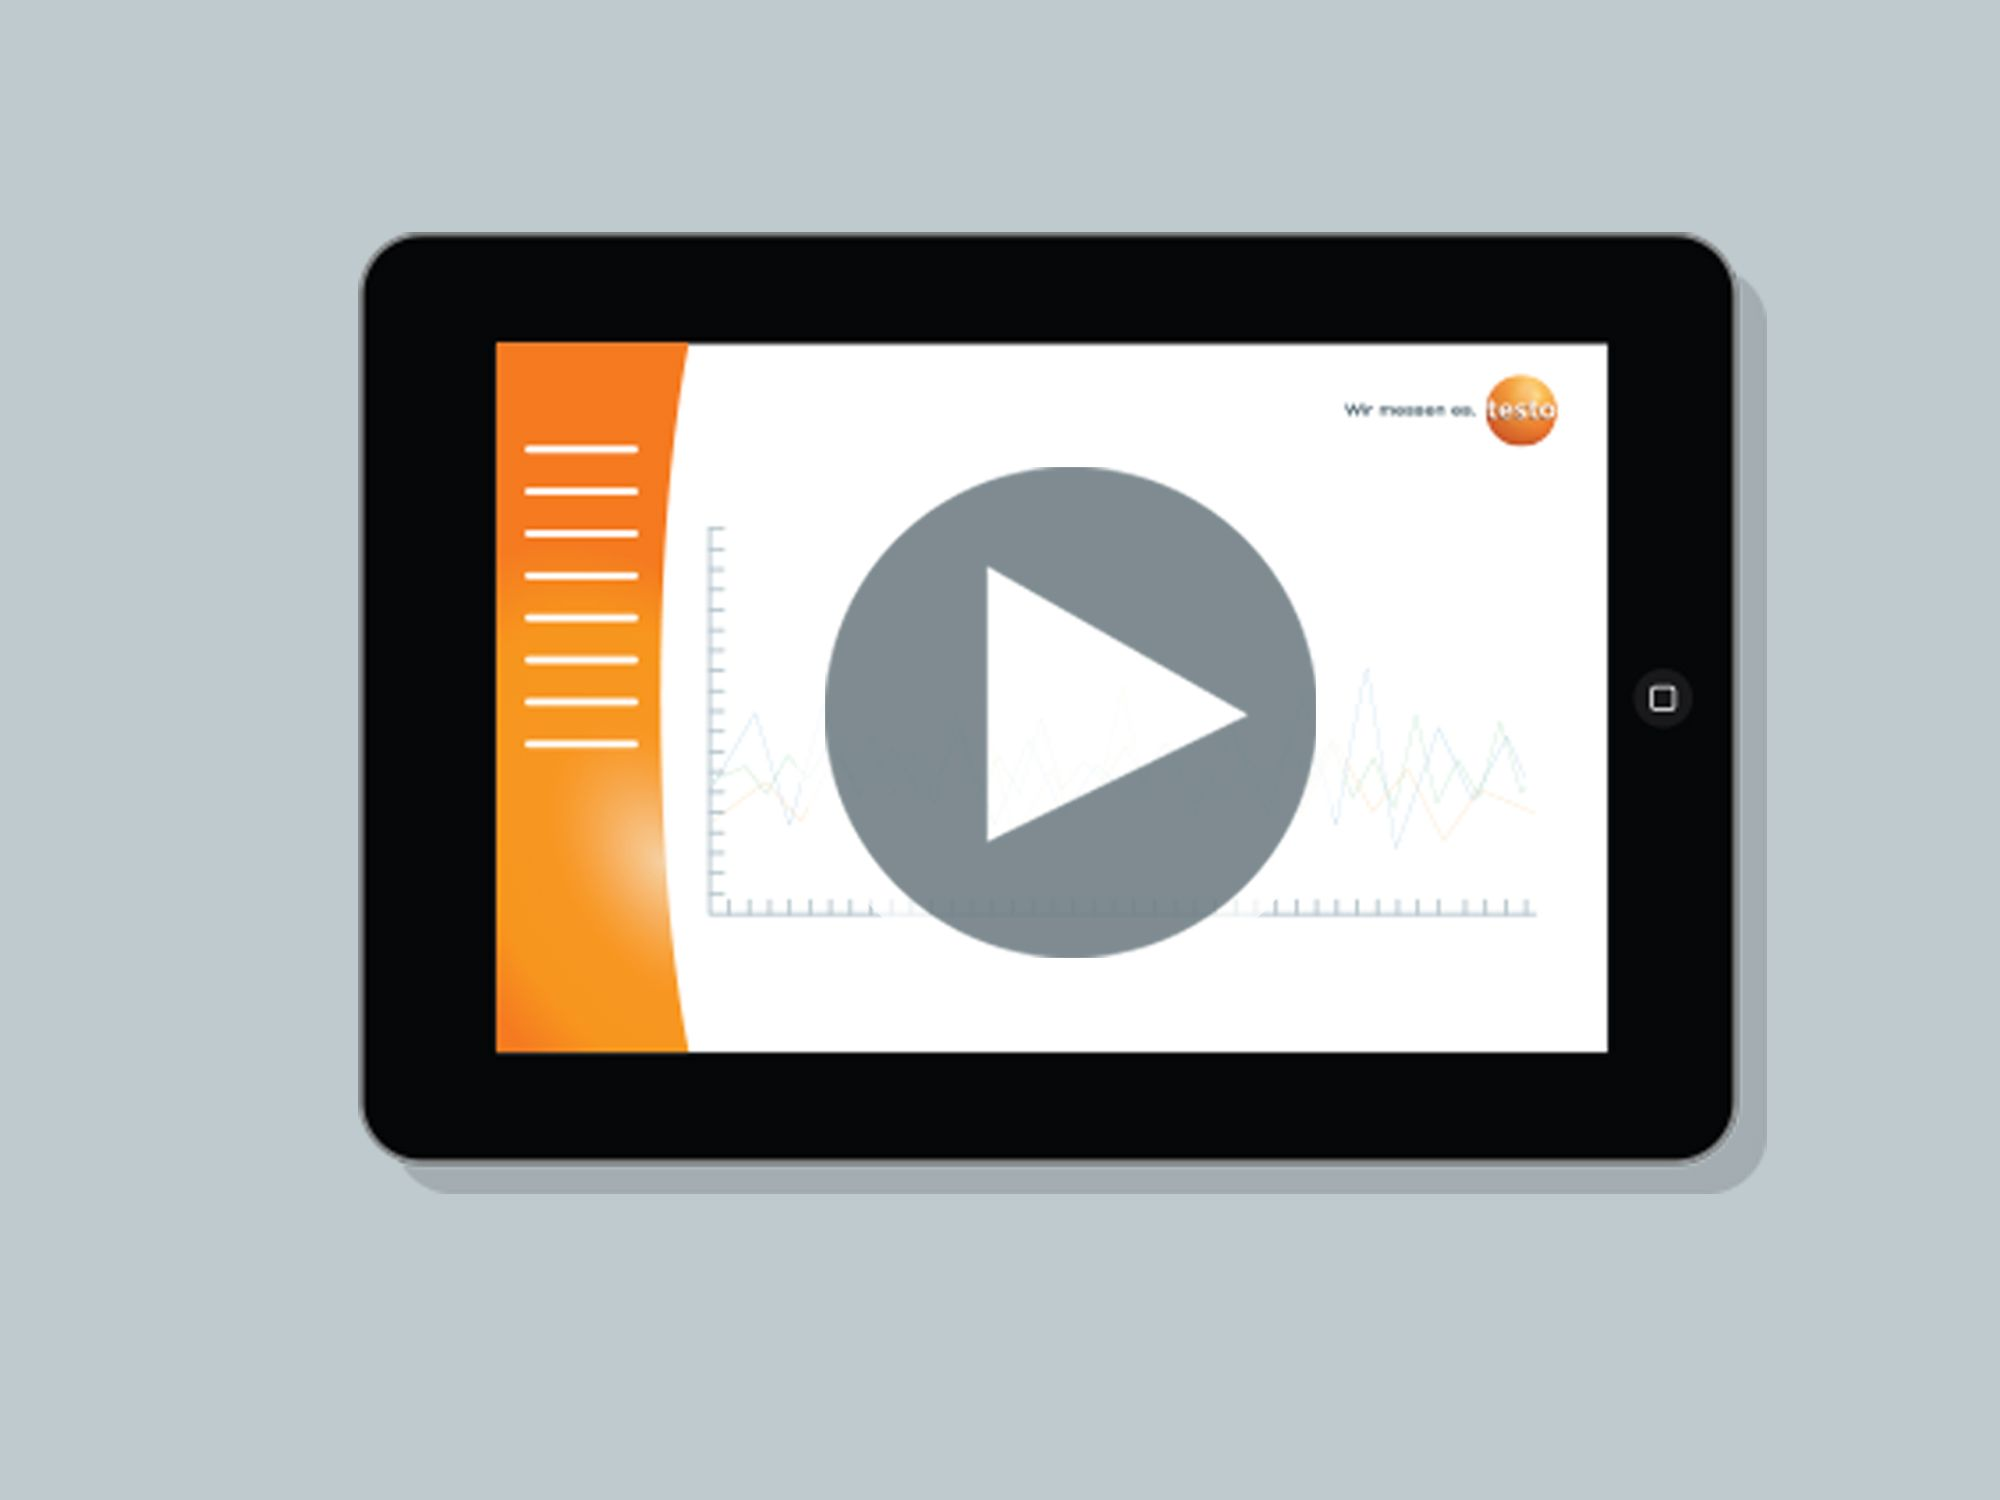 How-To Videos: testo Gas Analyser App